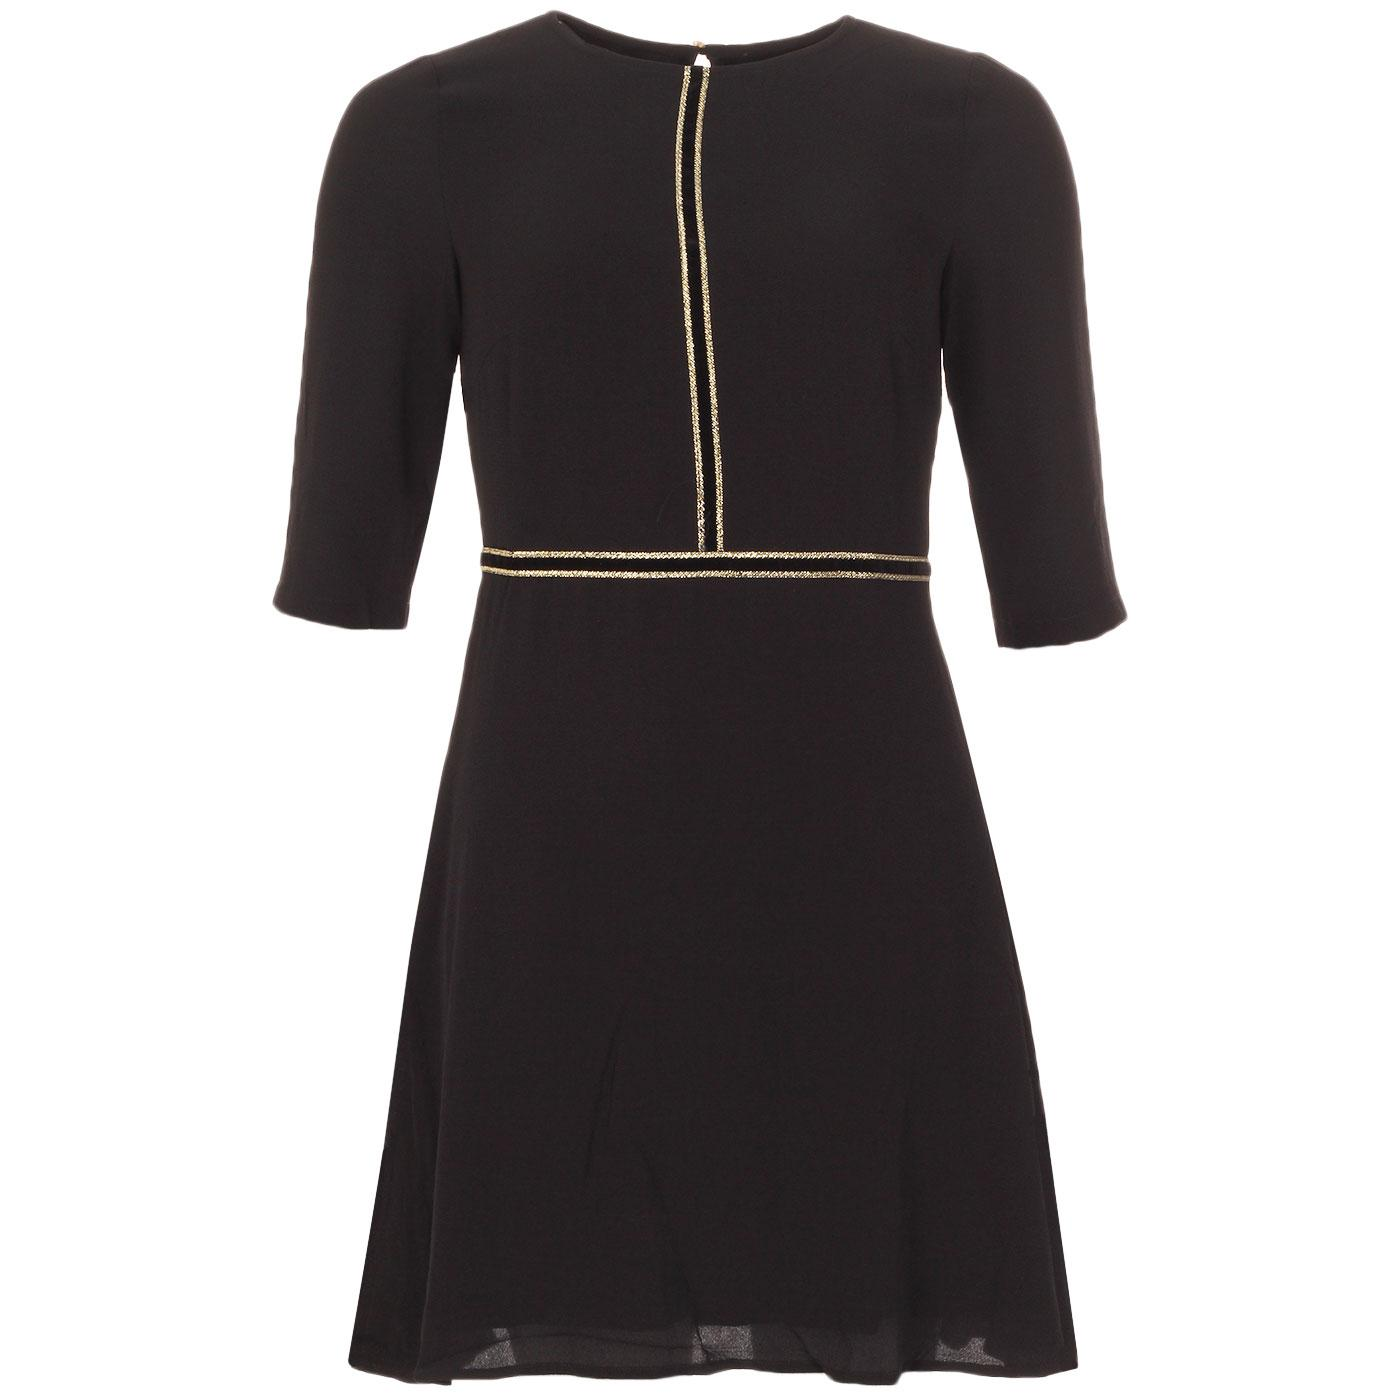 All The Trimmings TRAFFIC PEOPLE Piping Trim Dress